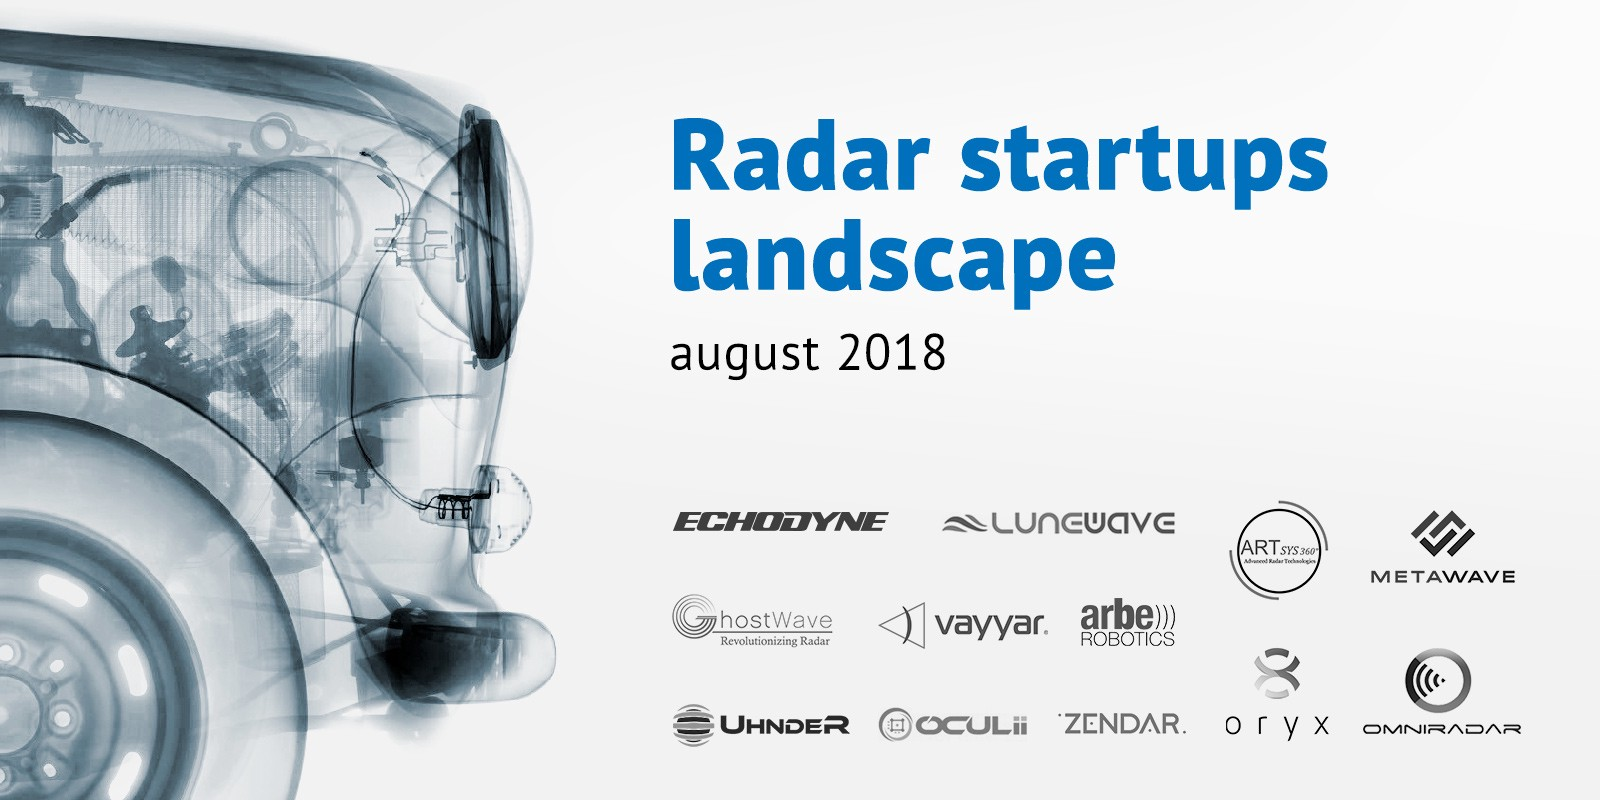 Radar startups review 08/18 - Frontier Tech Review - Medium